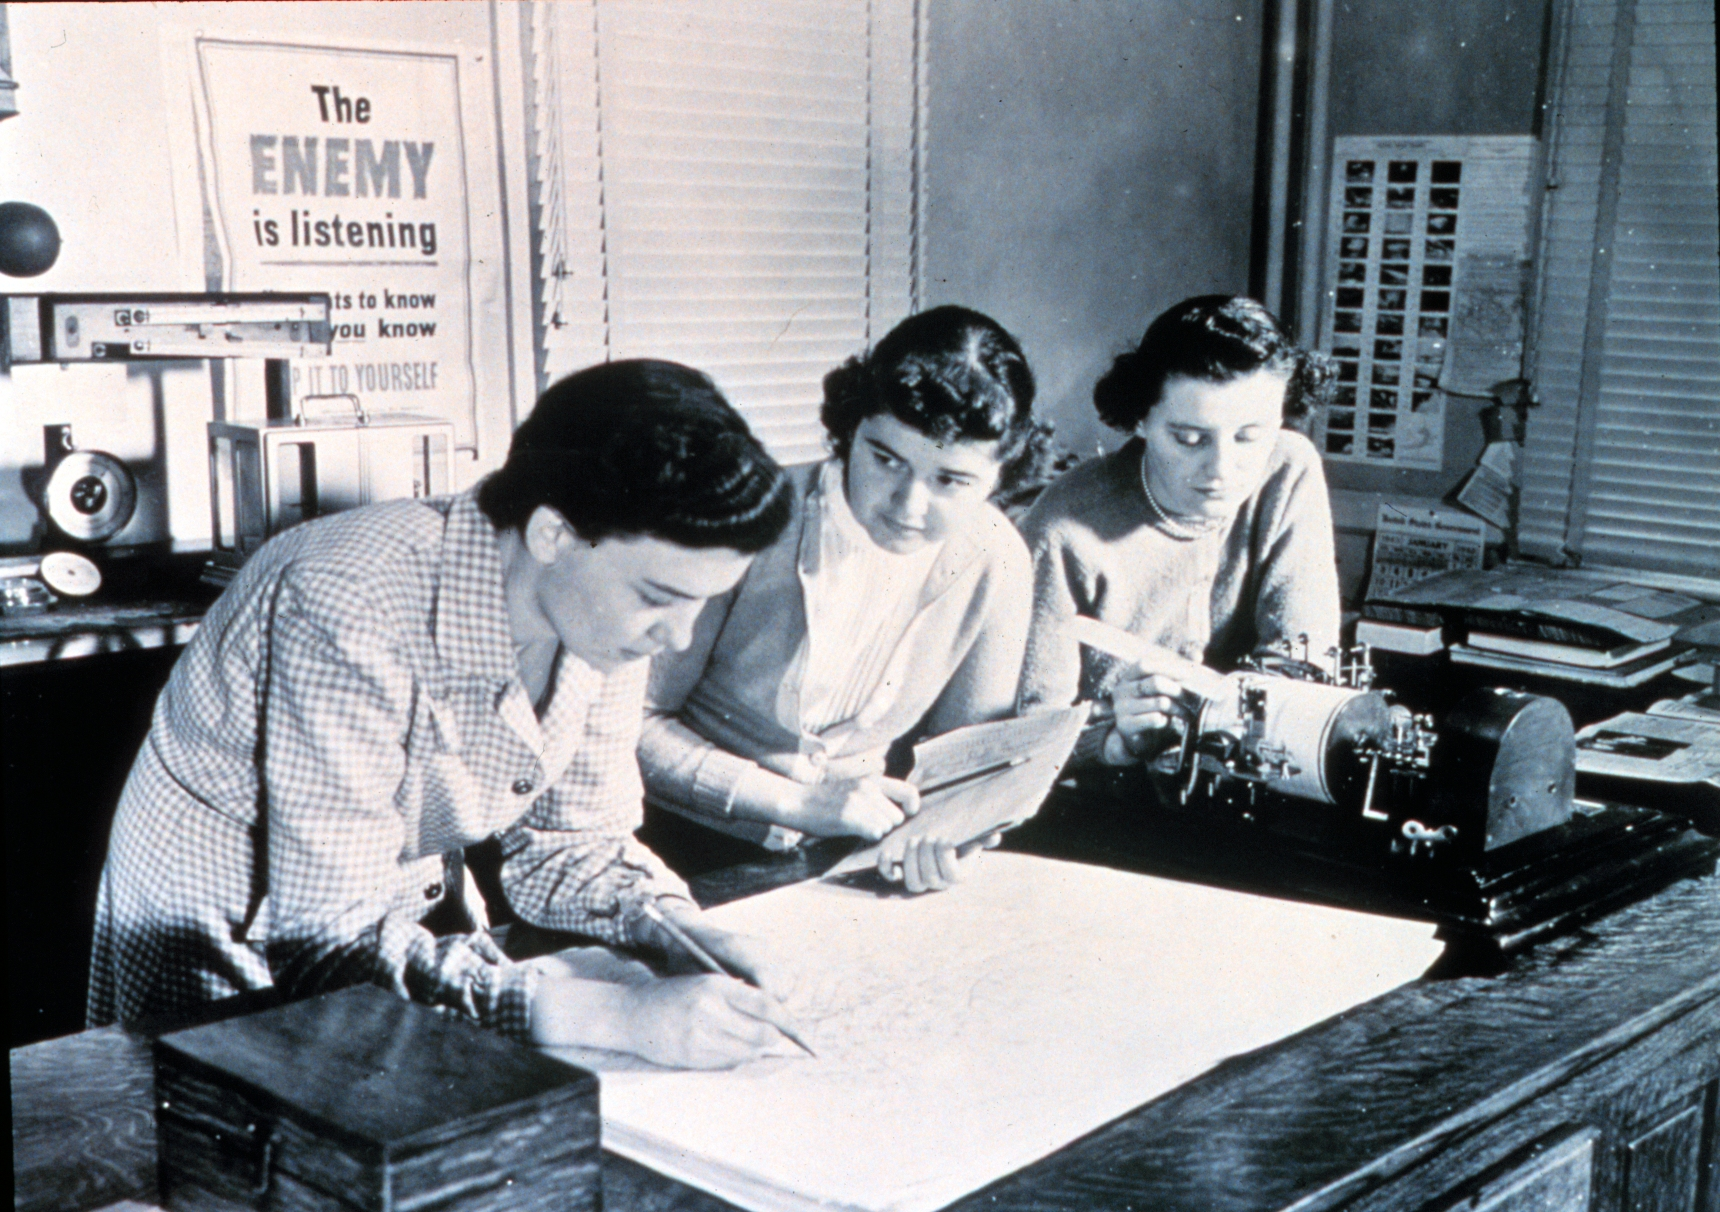 Unidentified women plot an upper air chart, c. 1944. NOAA Photo Library (online at https://www.flickr.com/photos/51647007@N08/5083205985/).